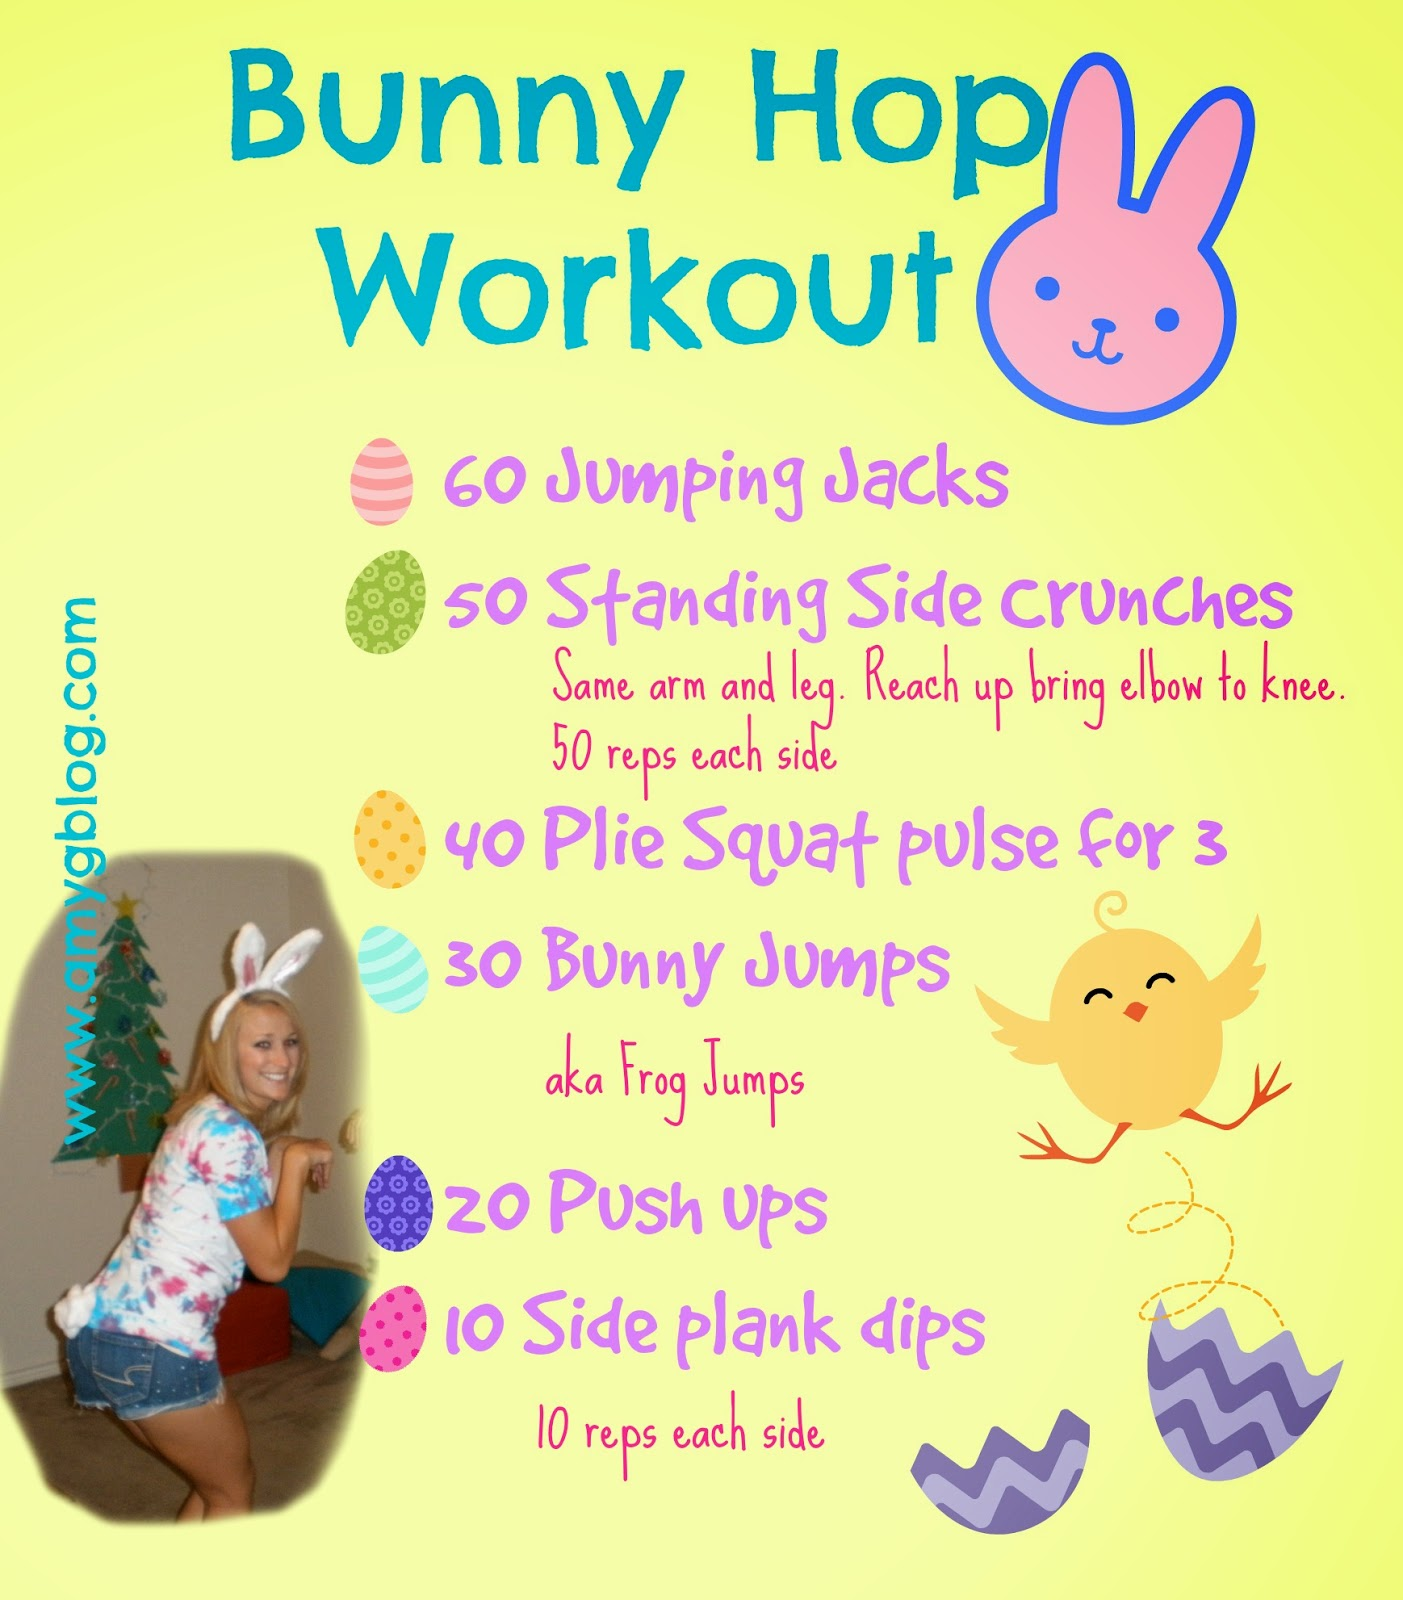 Bunny Hop Workout - an Easter themed workout to help you burn some calories this holiday!